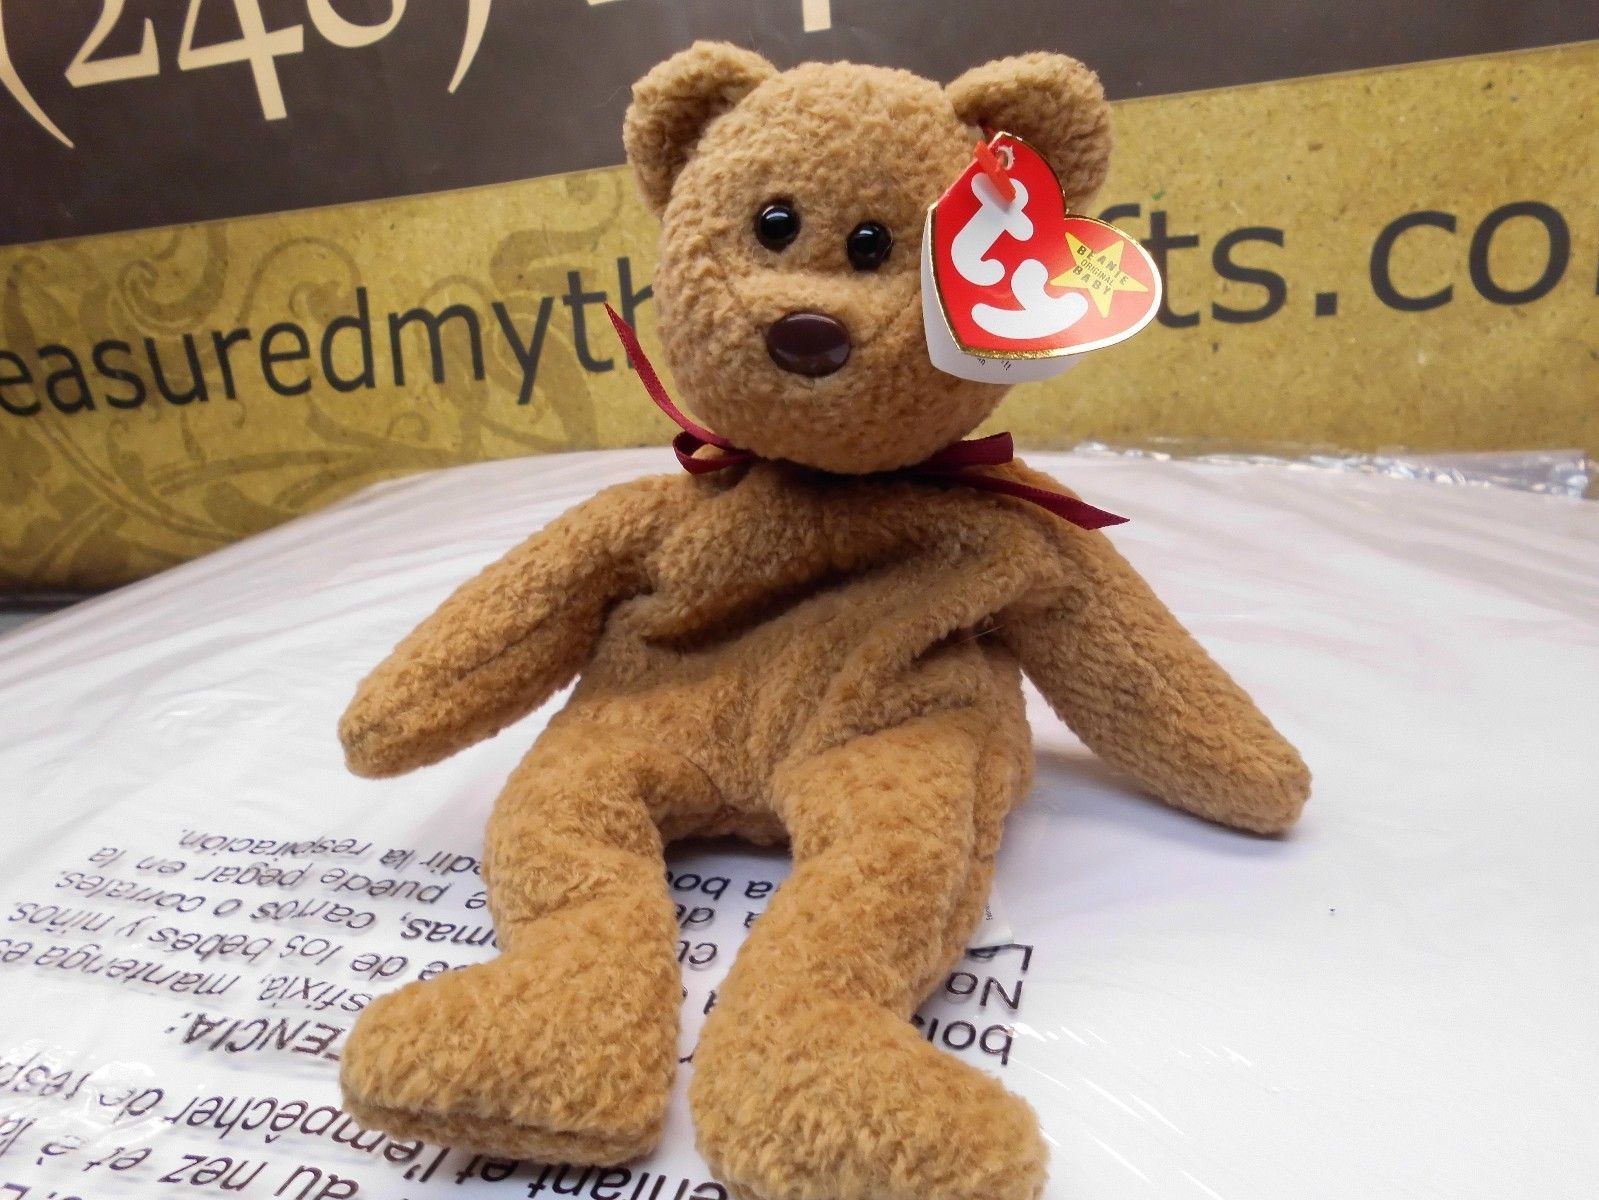 Rare Ty Beanie Babies Curly, Double Tush Tag and other errors